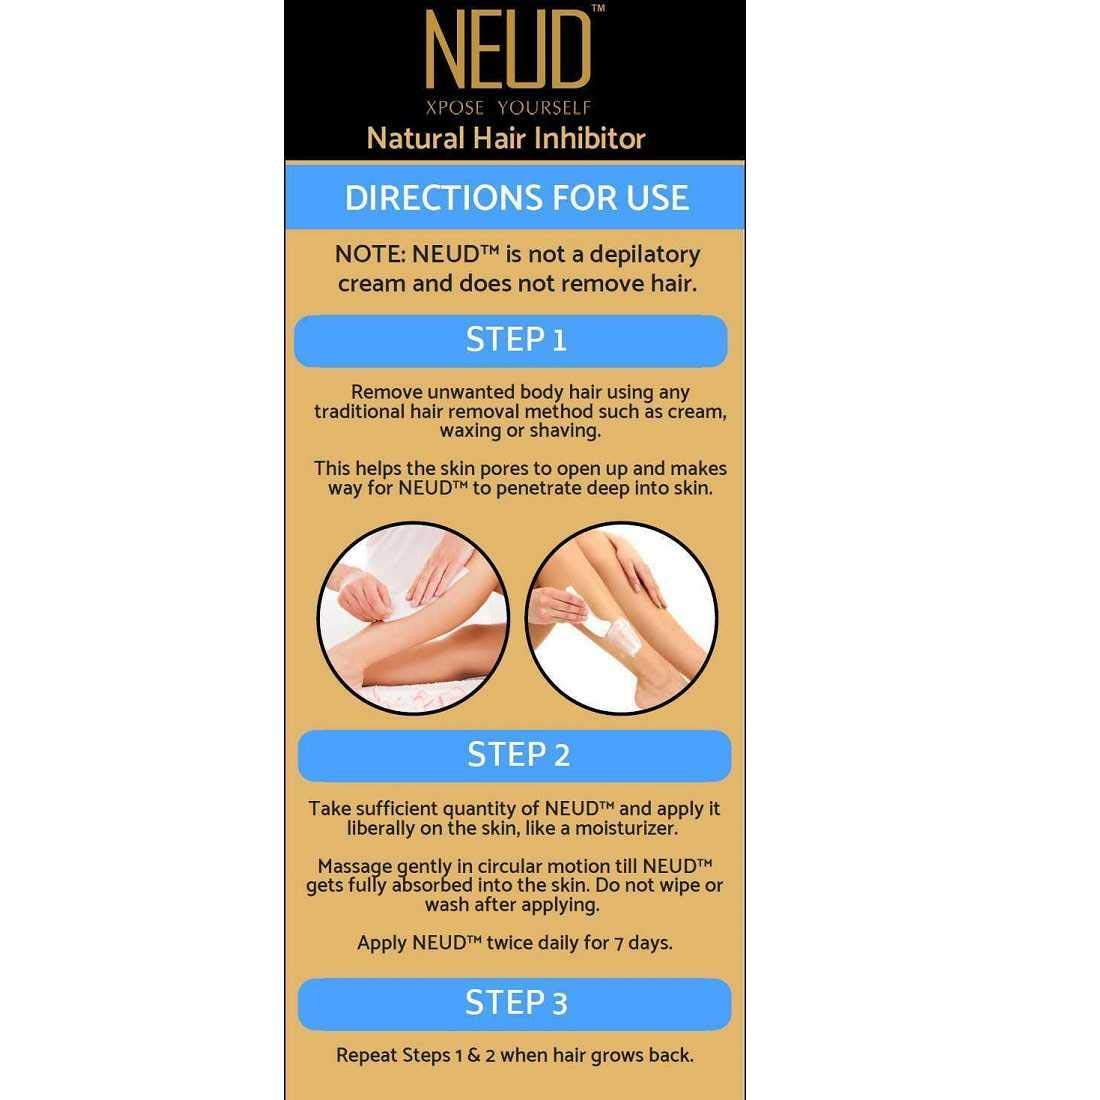 NEUD Natural Hair Inhibitor Review: Does It Really Slow Hair